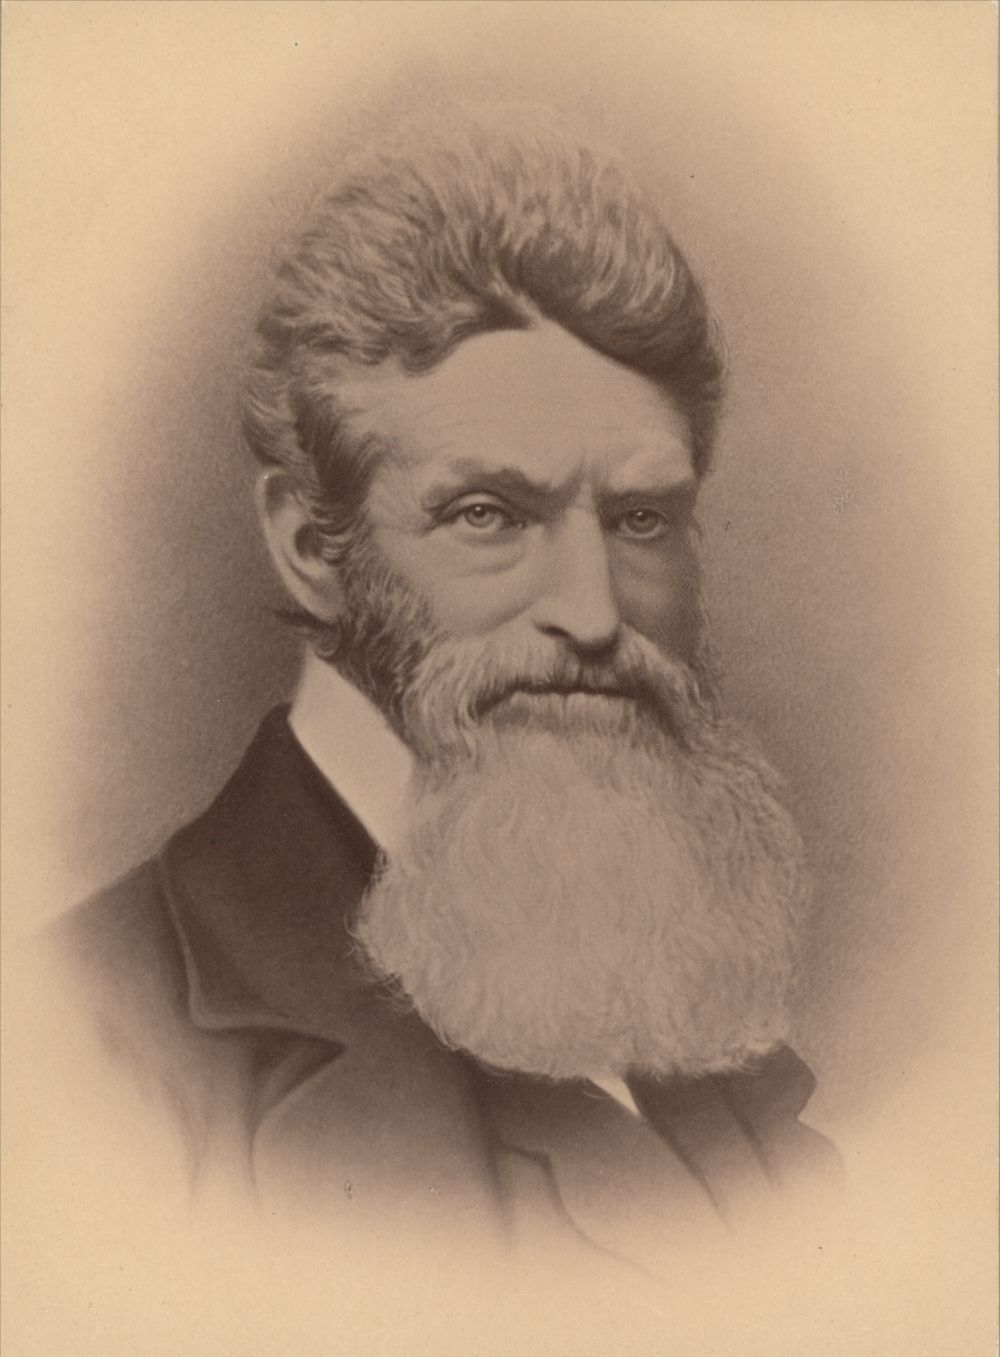 Abolitionist John Brown, who moved to the Kansas Territory to fight against the spread of slavery.